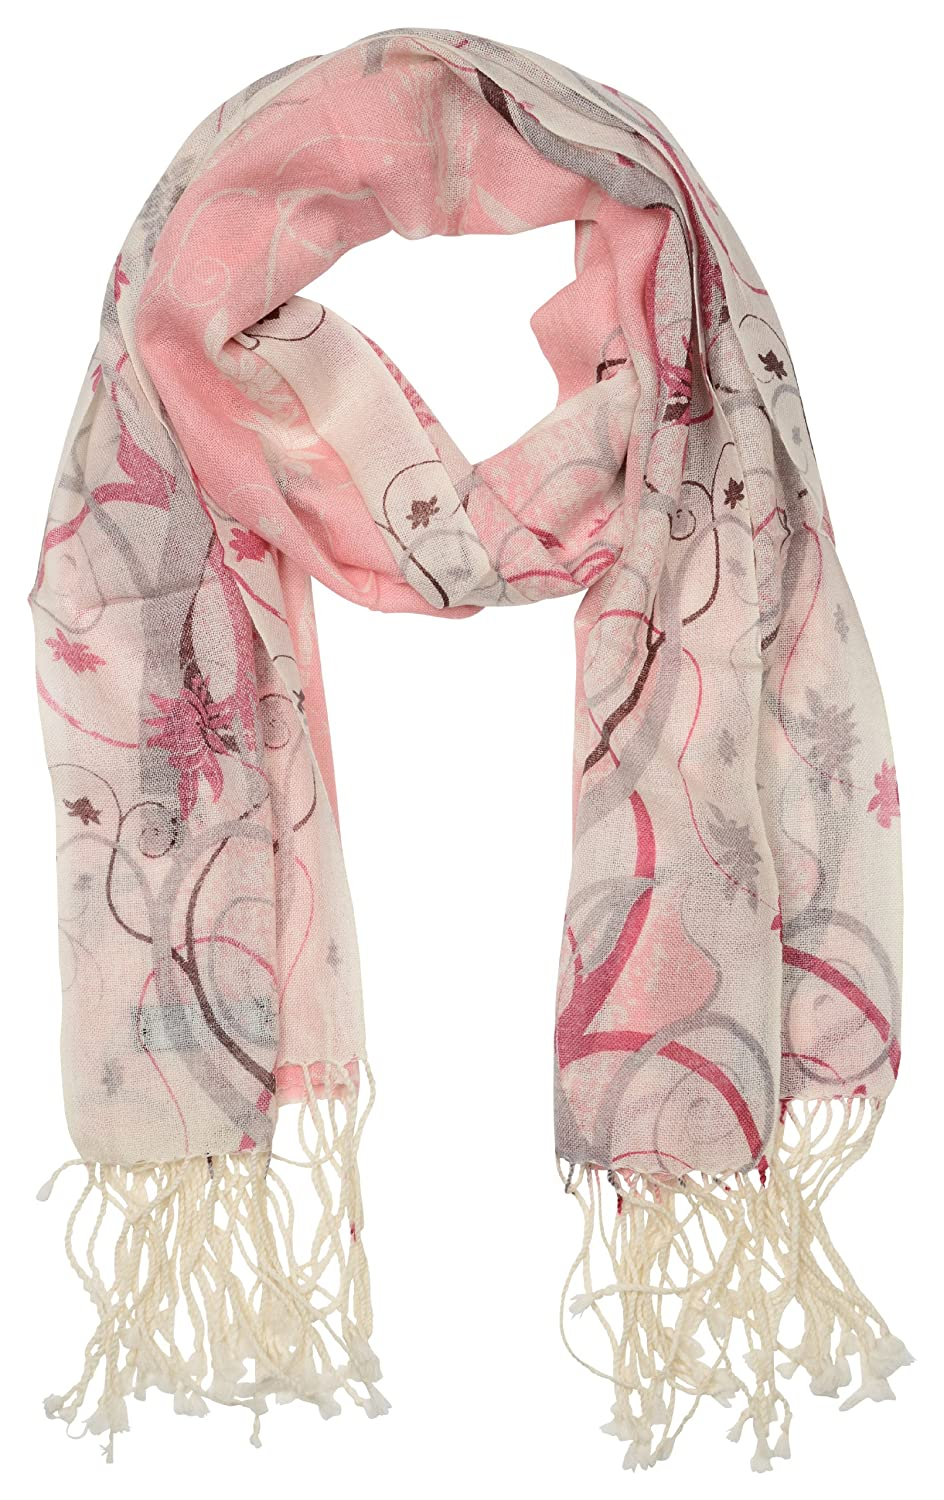 Novemberskies Women's Printed Pashmina Scarf Shawl - A Warm Breeze